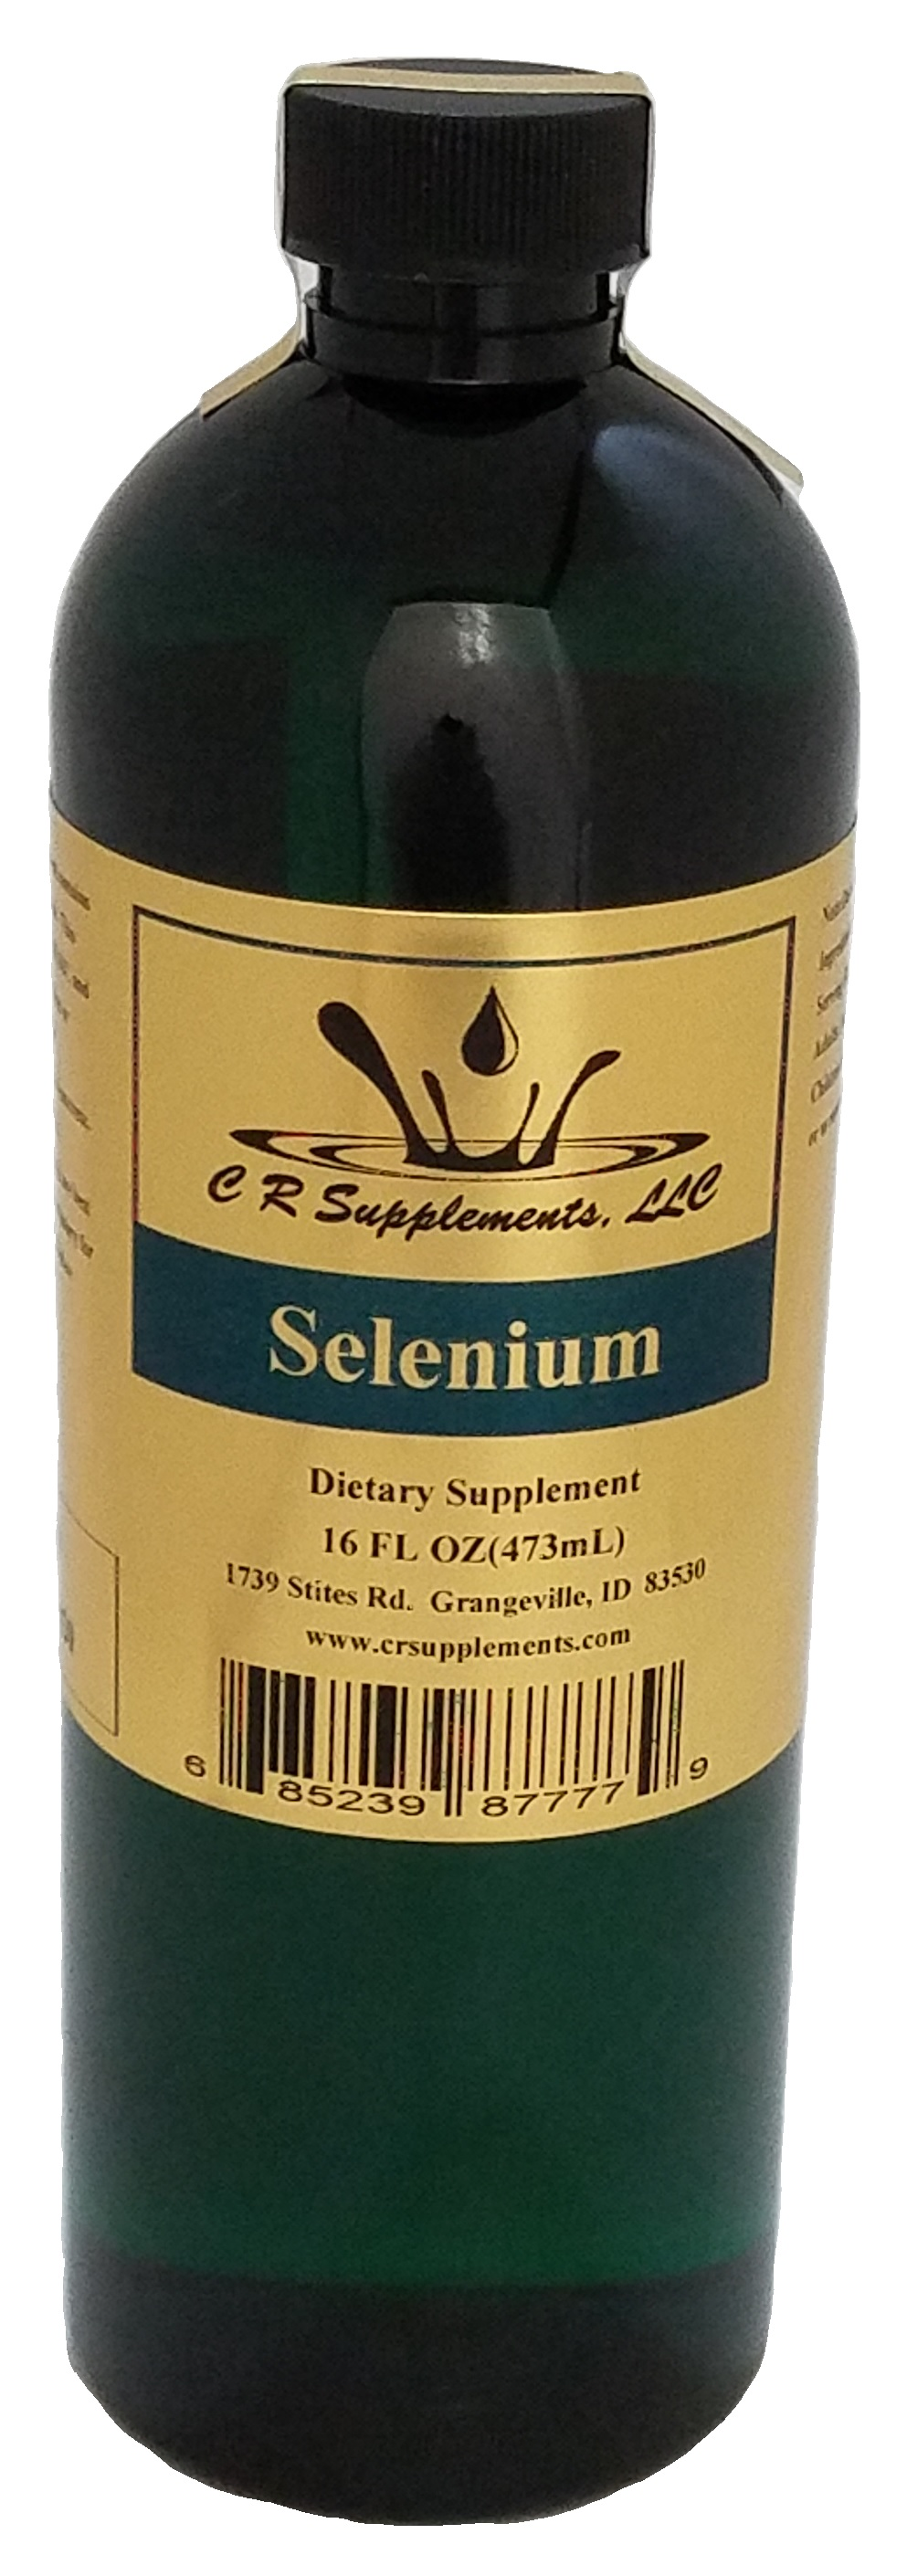 Selenium Dietary Supplement, Selenium, WaterOz Selenium Replacement, Liquid dietary supplement, Kosher of America approved, KOA approved, Pareve, vegan application, elemental mineral, flexible liquid mineral, maximum absorption